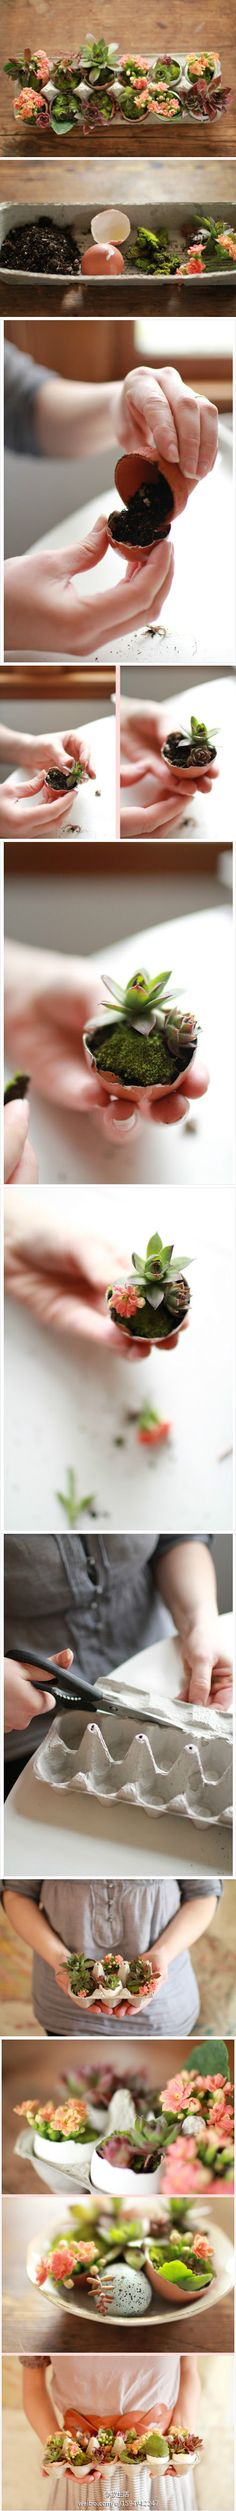 Creating your own eggshell garden. Materials needed: potting soil, egg shells, moss, and more meat, flowers. Steps: ① Fill in the empty eggshell right amount of potting soil (2) adding meat plant (3) add a layer of moss on top of the soil ④ If you like, you can add branches lovely flowers to inject color ⑤ cut an egg boxes on both sides, and join ...